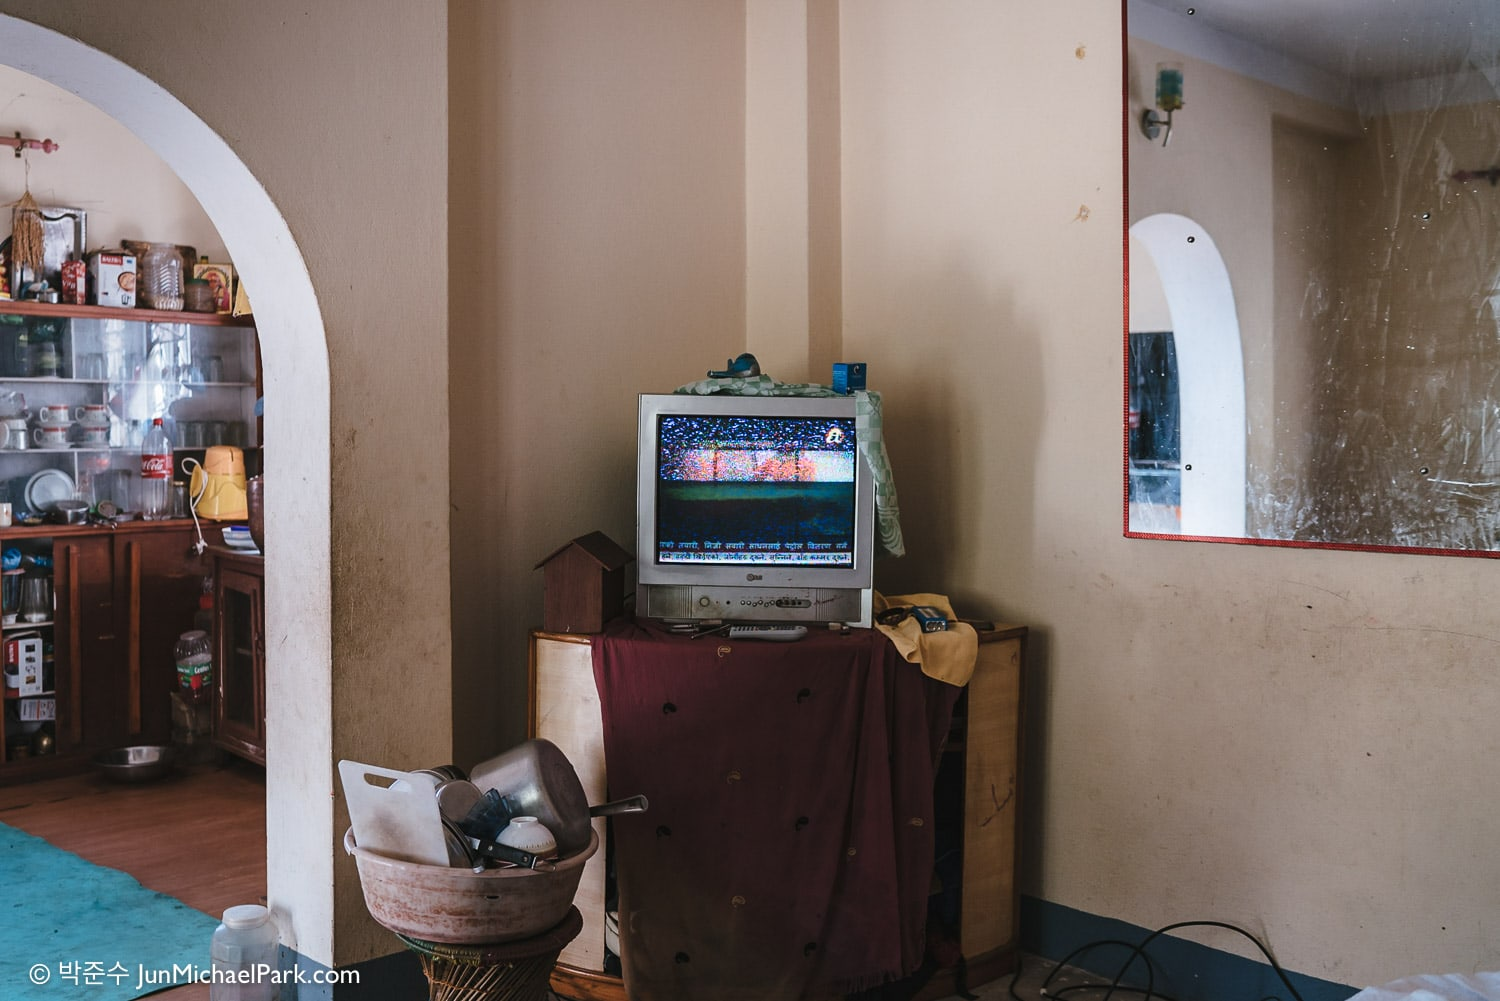 TV with static signal at a house in Kavresthali, Kathmandu District, Nepal. 03.11.15